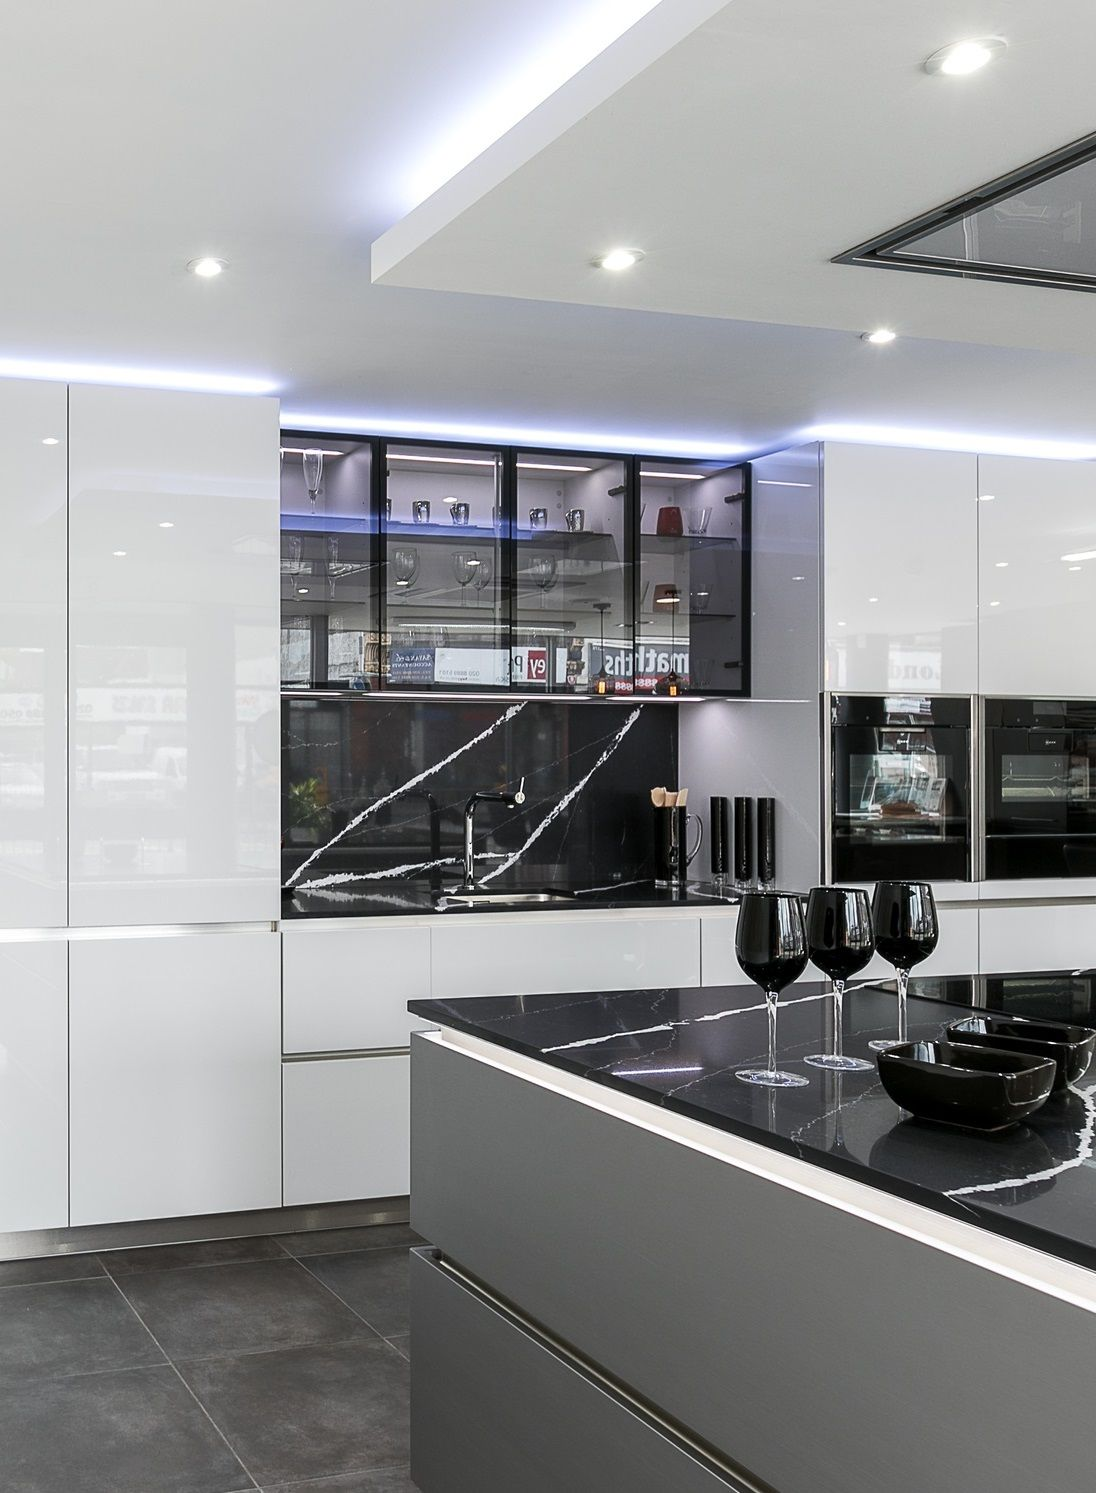 Modern Kitchen Design With No Handles Gloss Lacquered Doors With A Dramatic Quartz Worktop And Splashbac Modern Kitchen Design Kitchen Fittings Kitchen Design